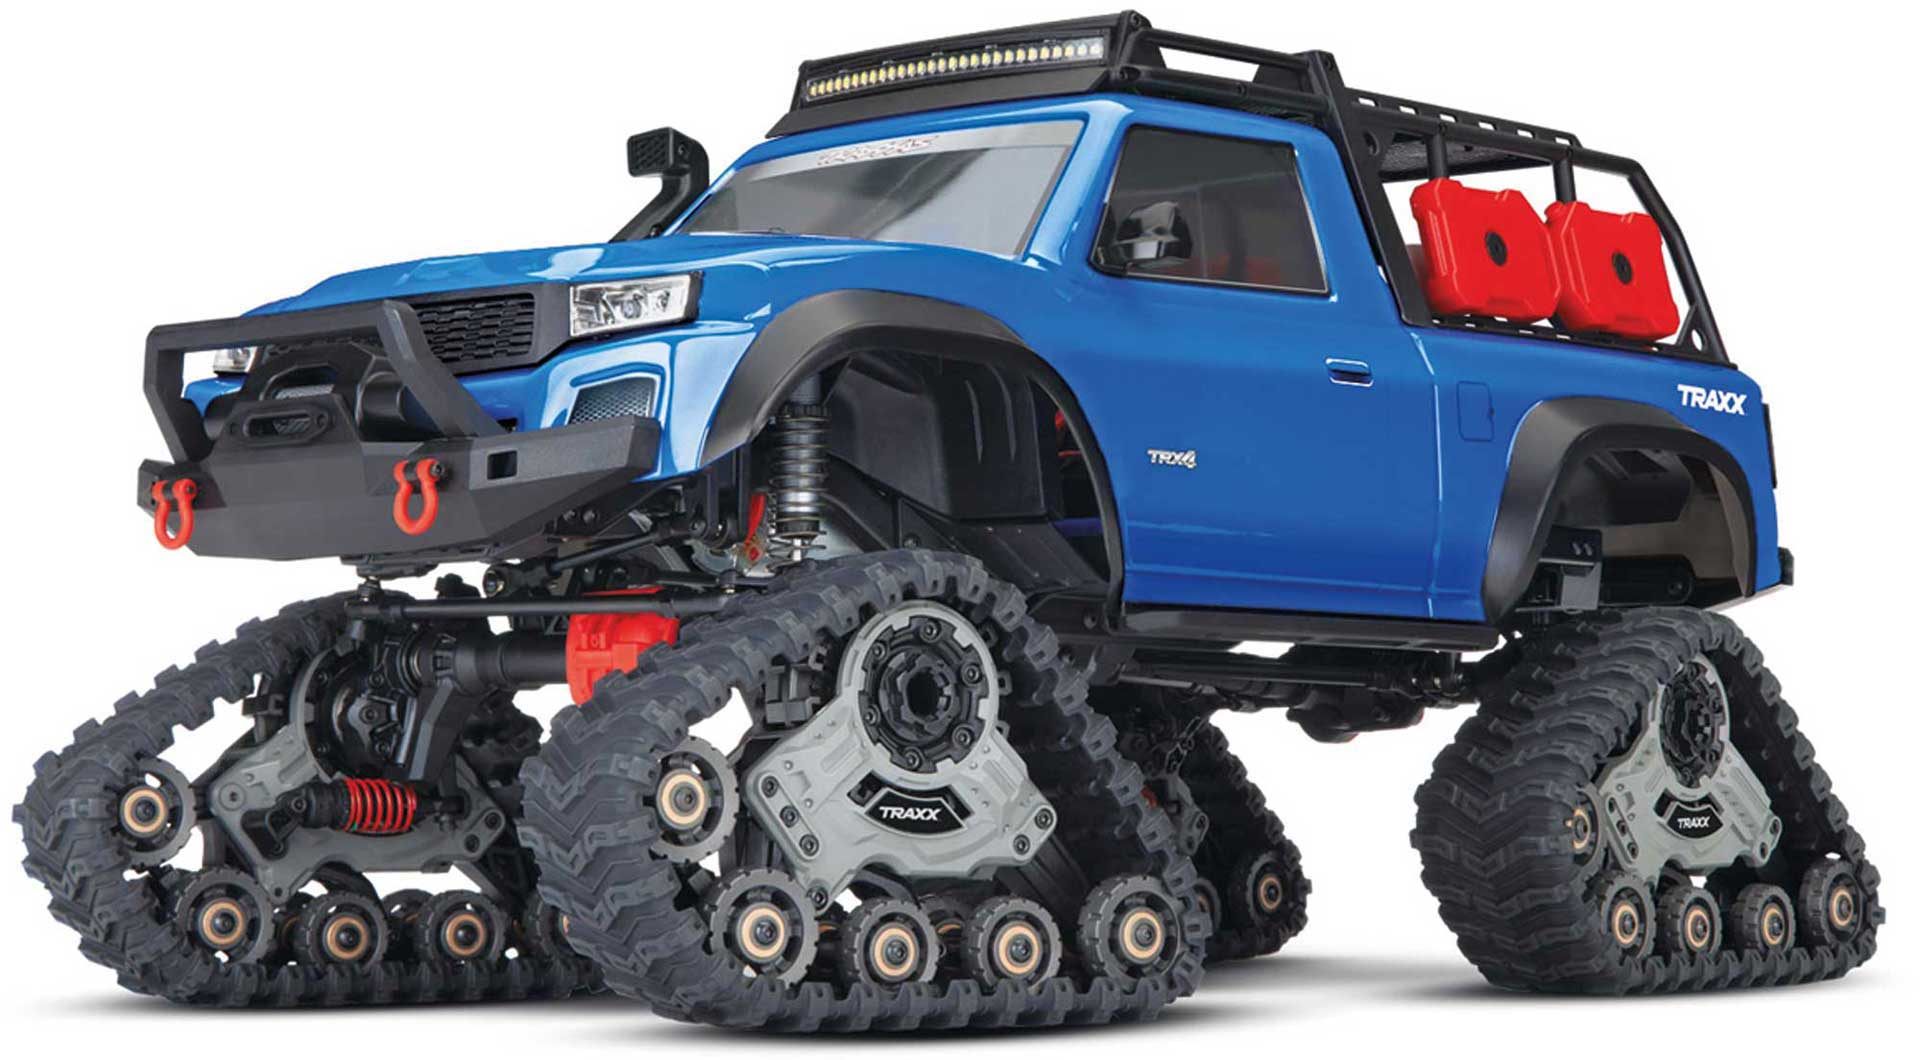 TRAXXAS TRX-4 WITH TRAXX CHAINS SKIRT CRAWLER BLUE 1/10 4X4 WATERPROOF 2,4GHZ TQ TRANSMITTER, TRACKED VEHICLE